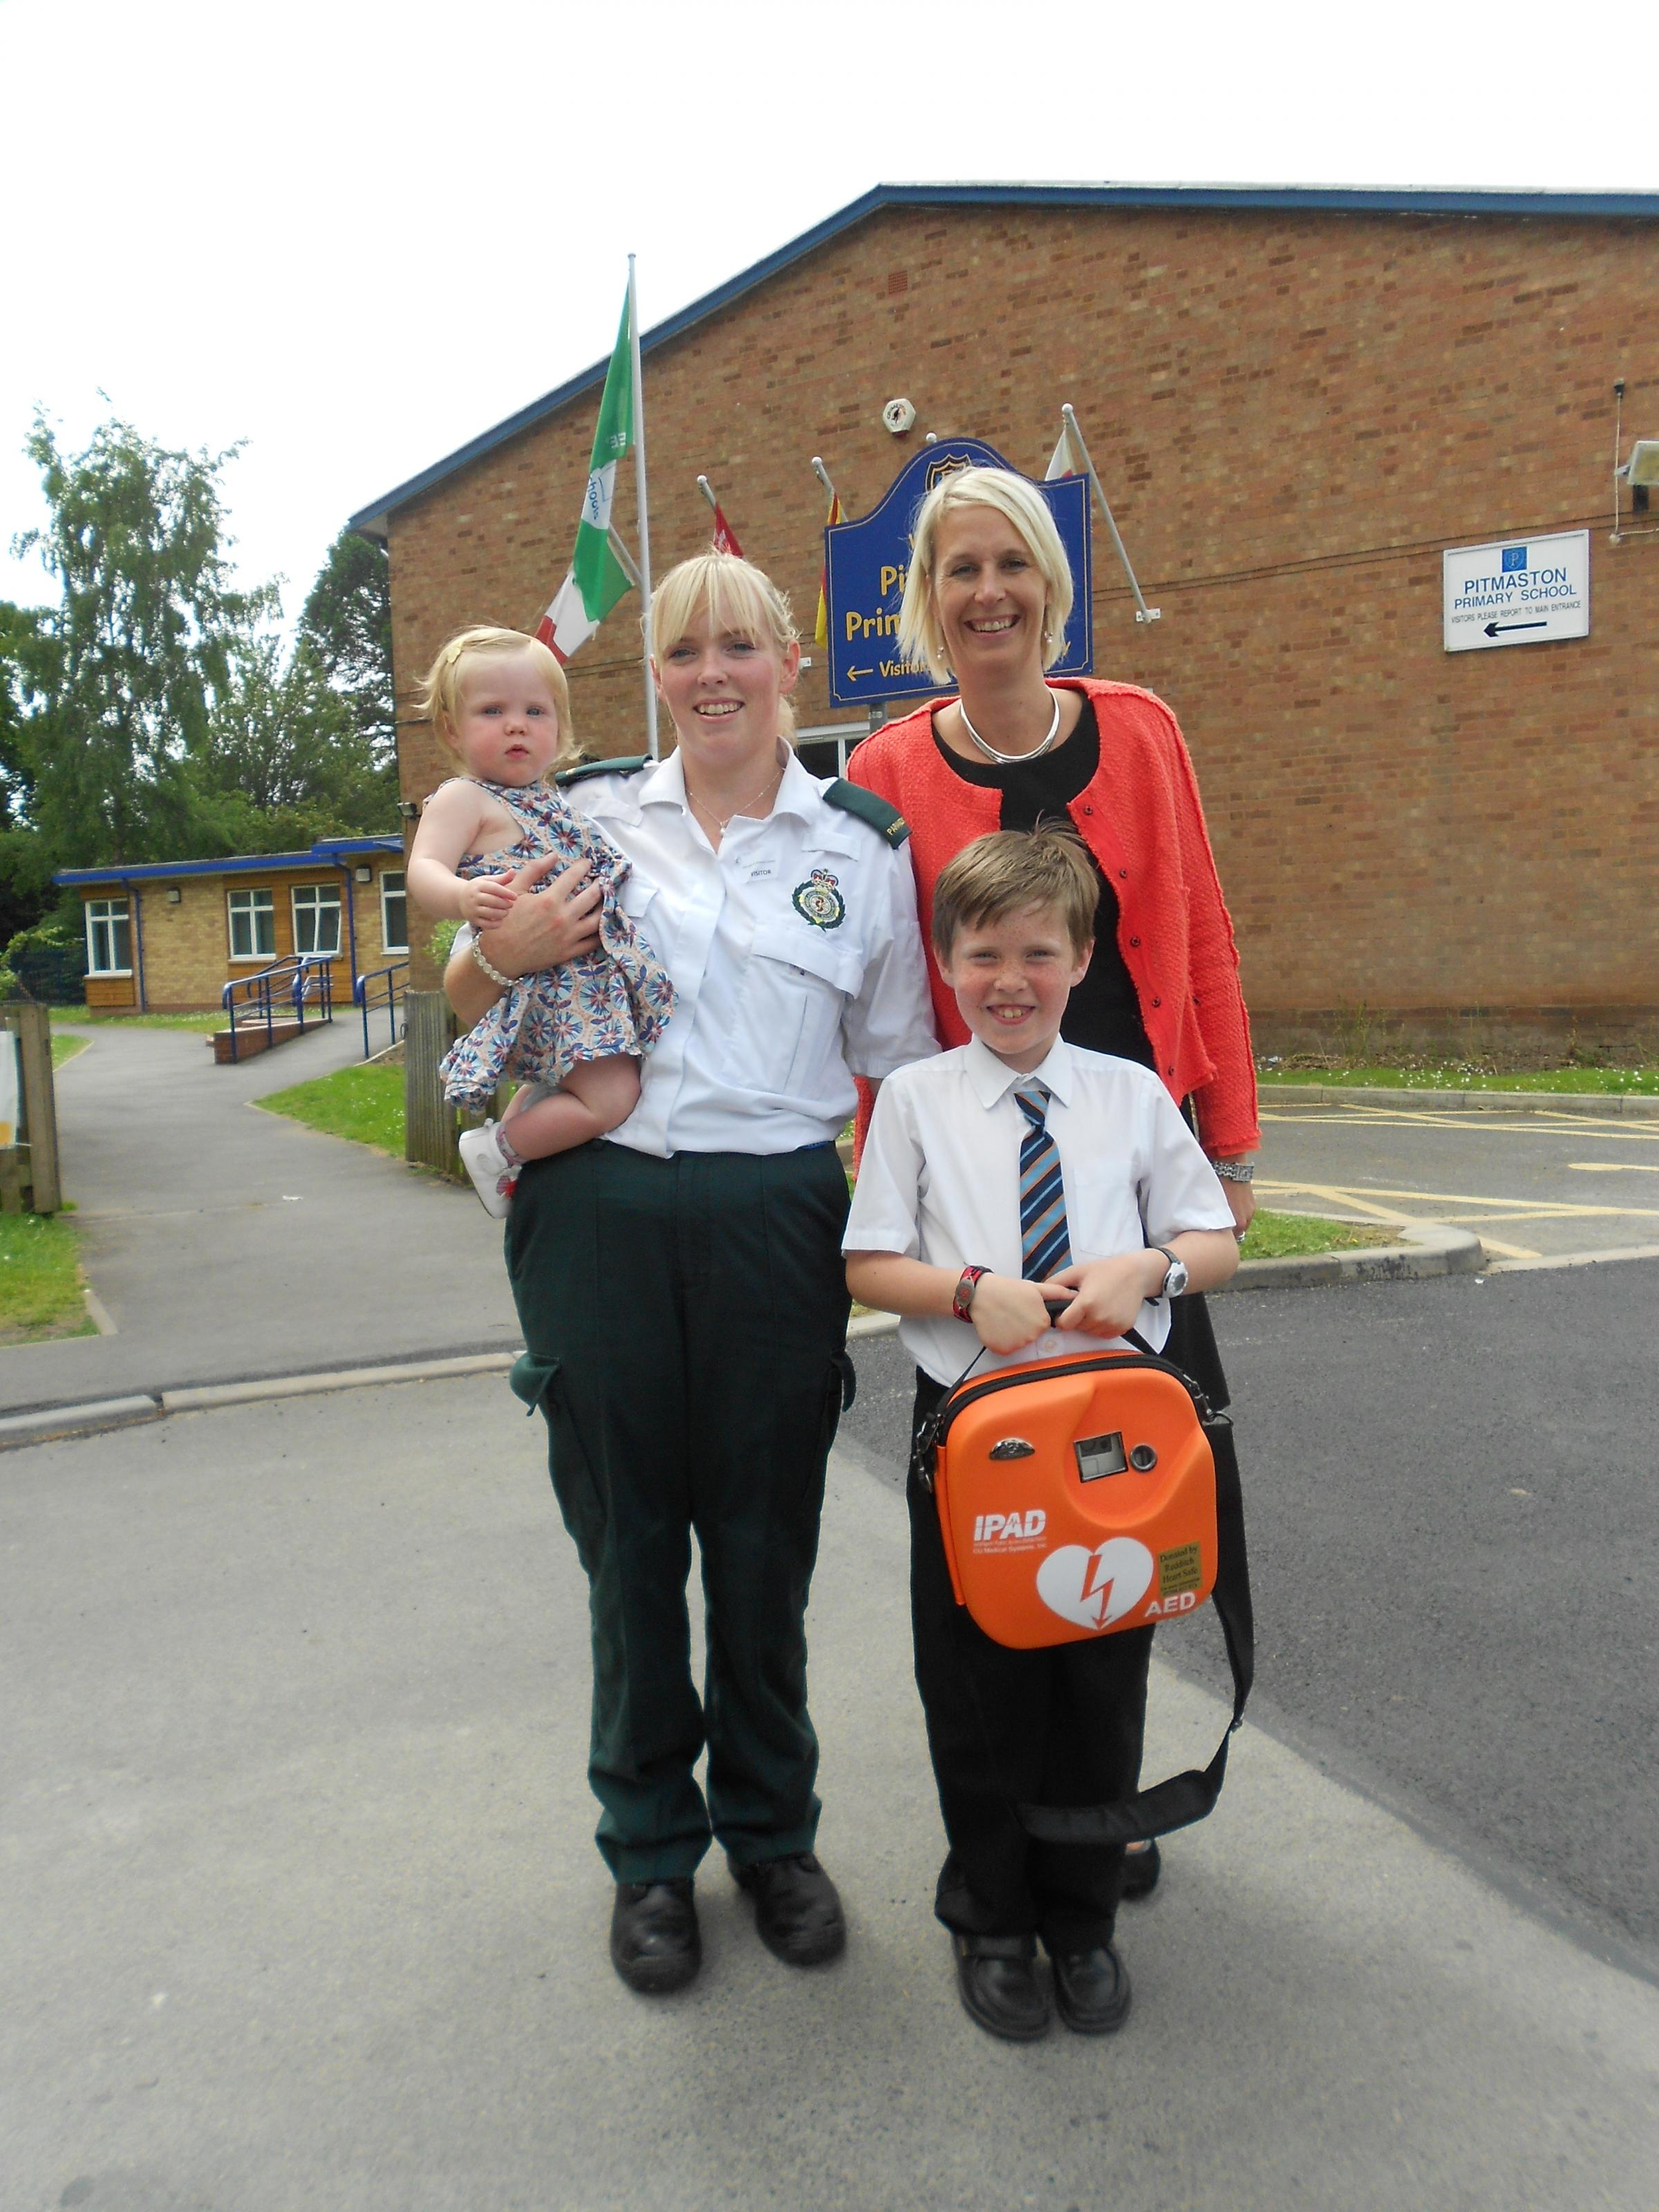 Family of boy with heart condition help fundraise for school defibrillator